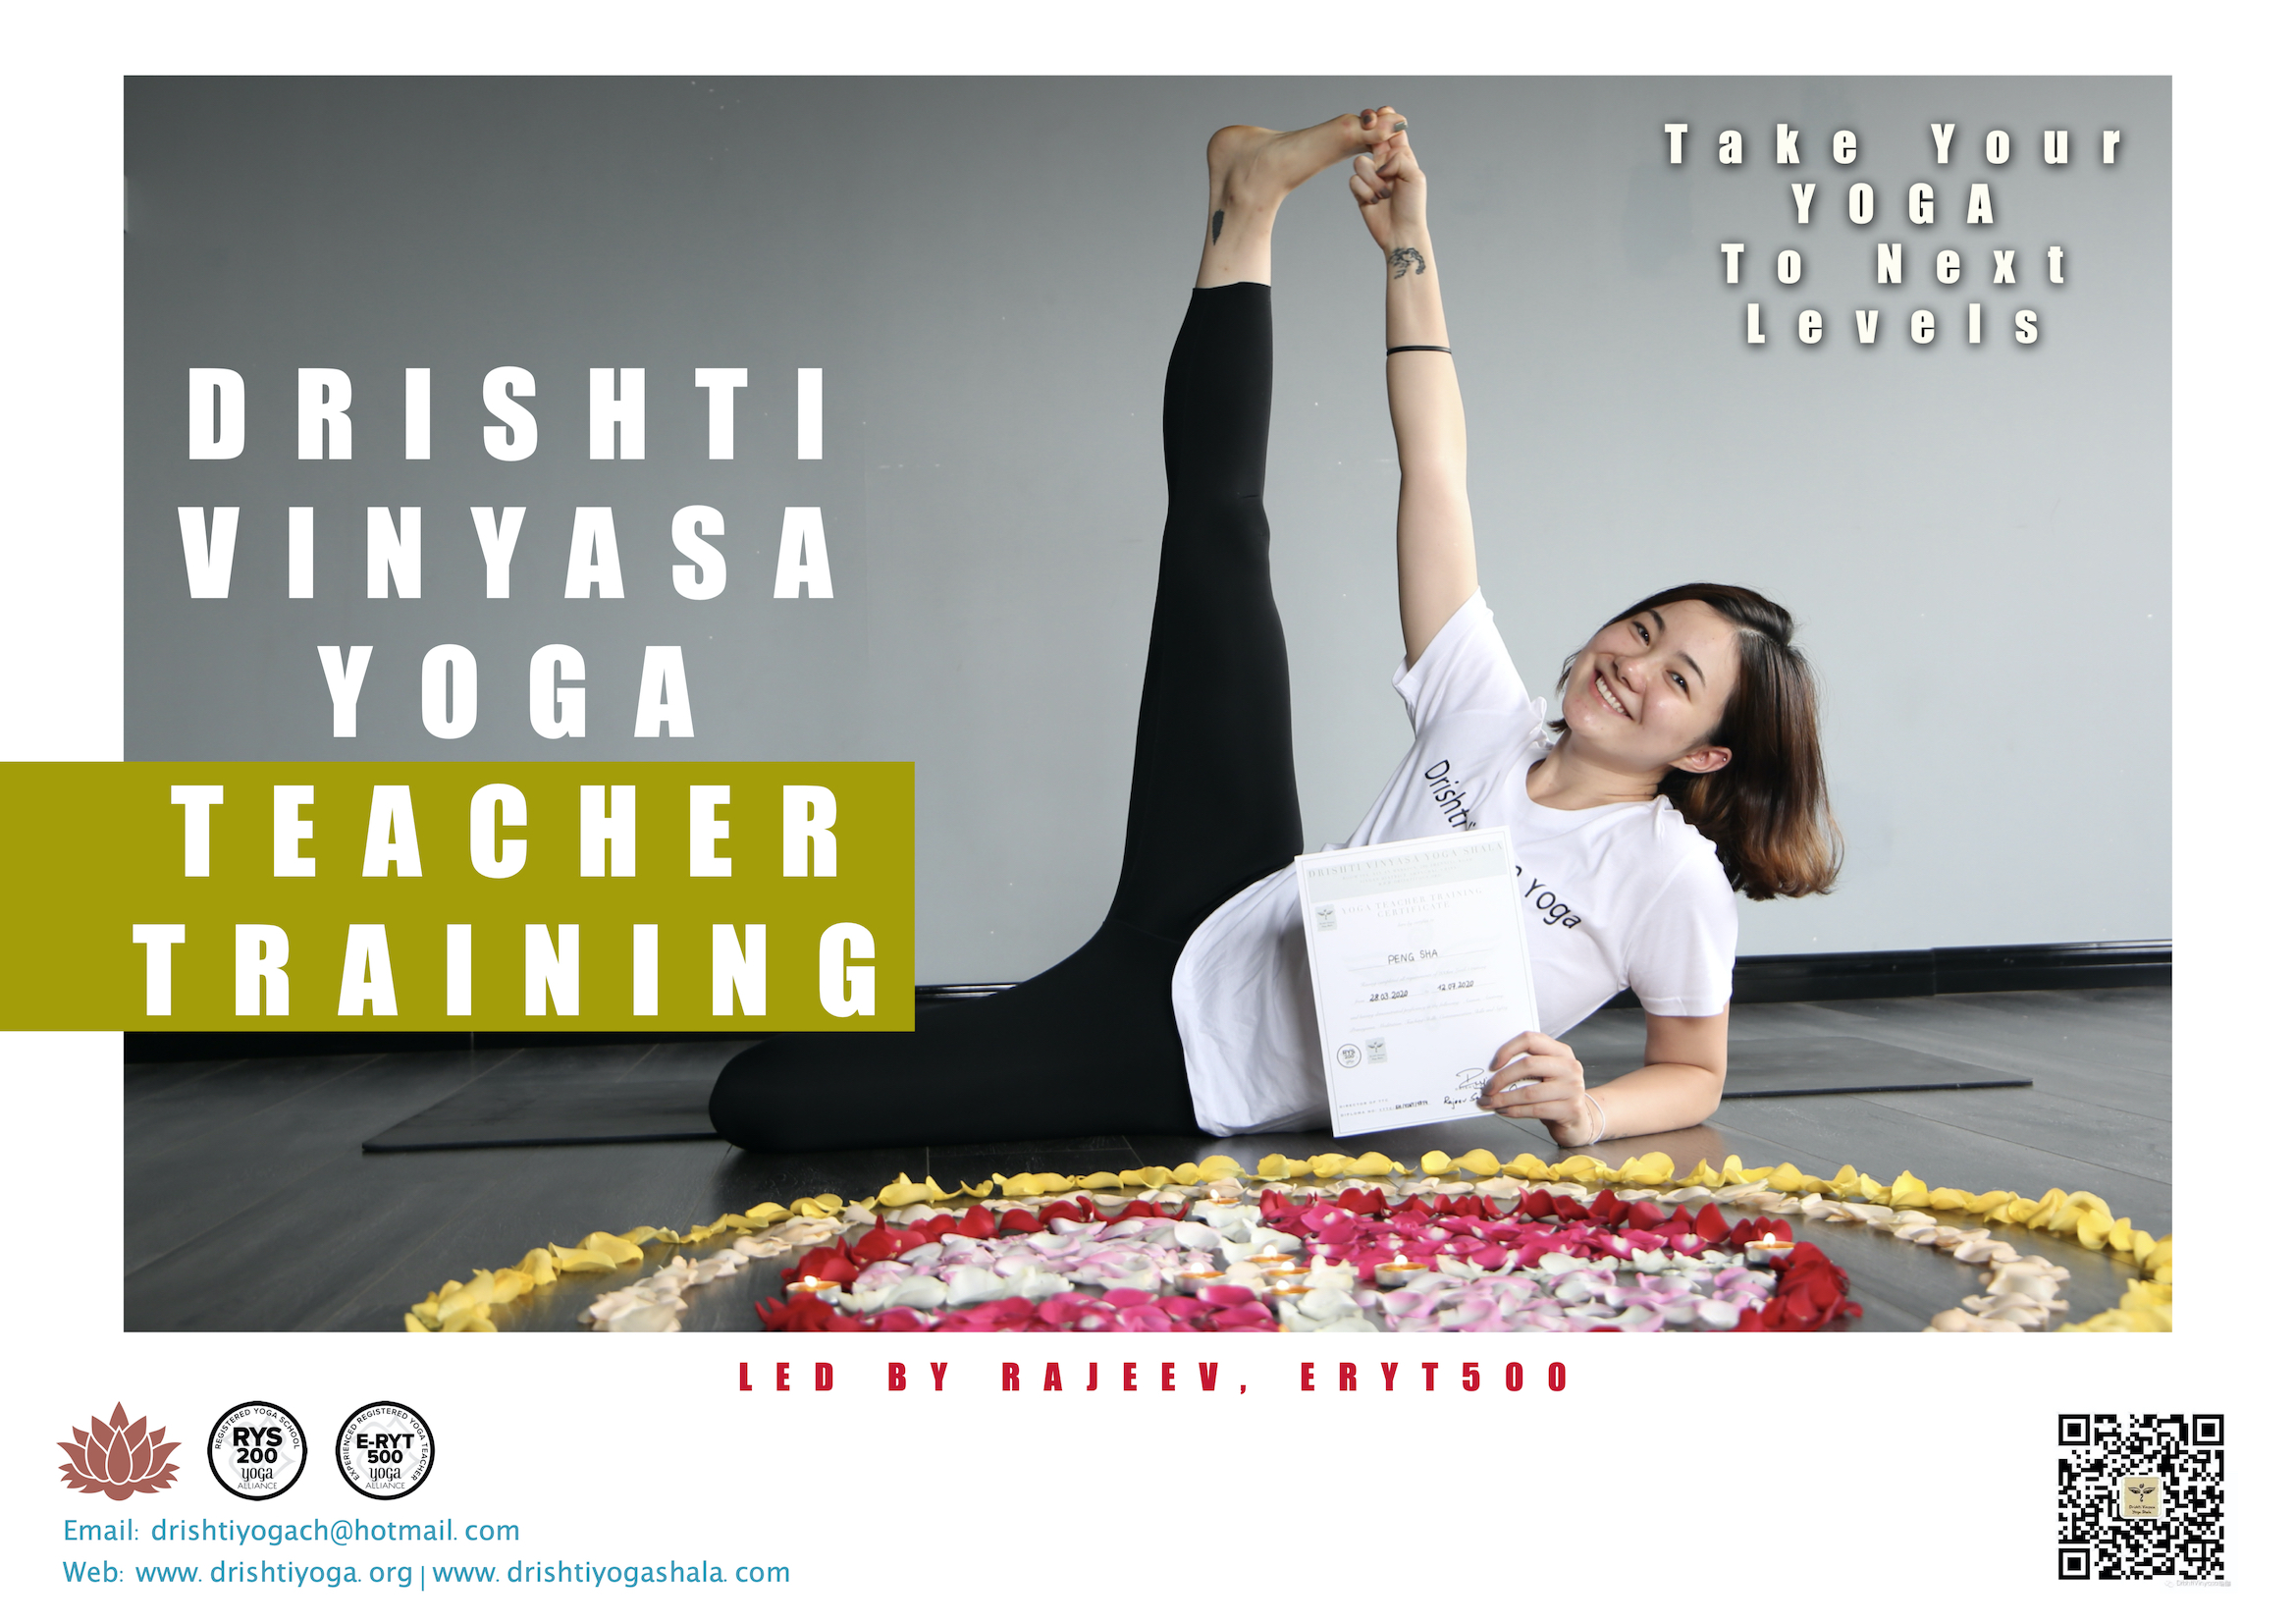 Drishti Vinyasa Yoga Teacher Training - Aug-Nov 2020 - Shanghai, China copy 5-p1.jpg